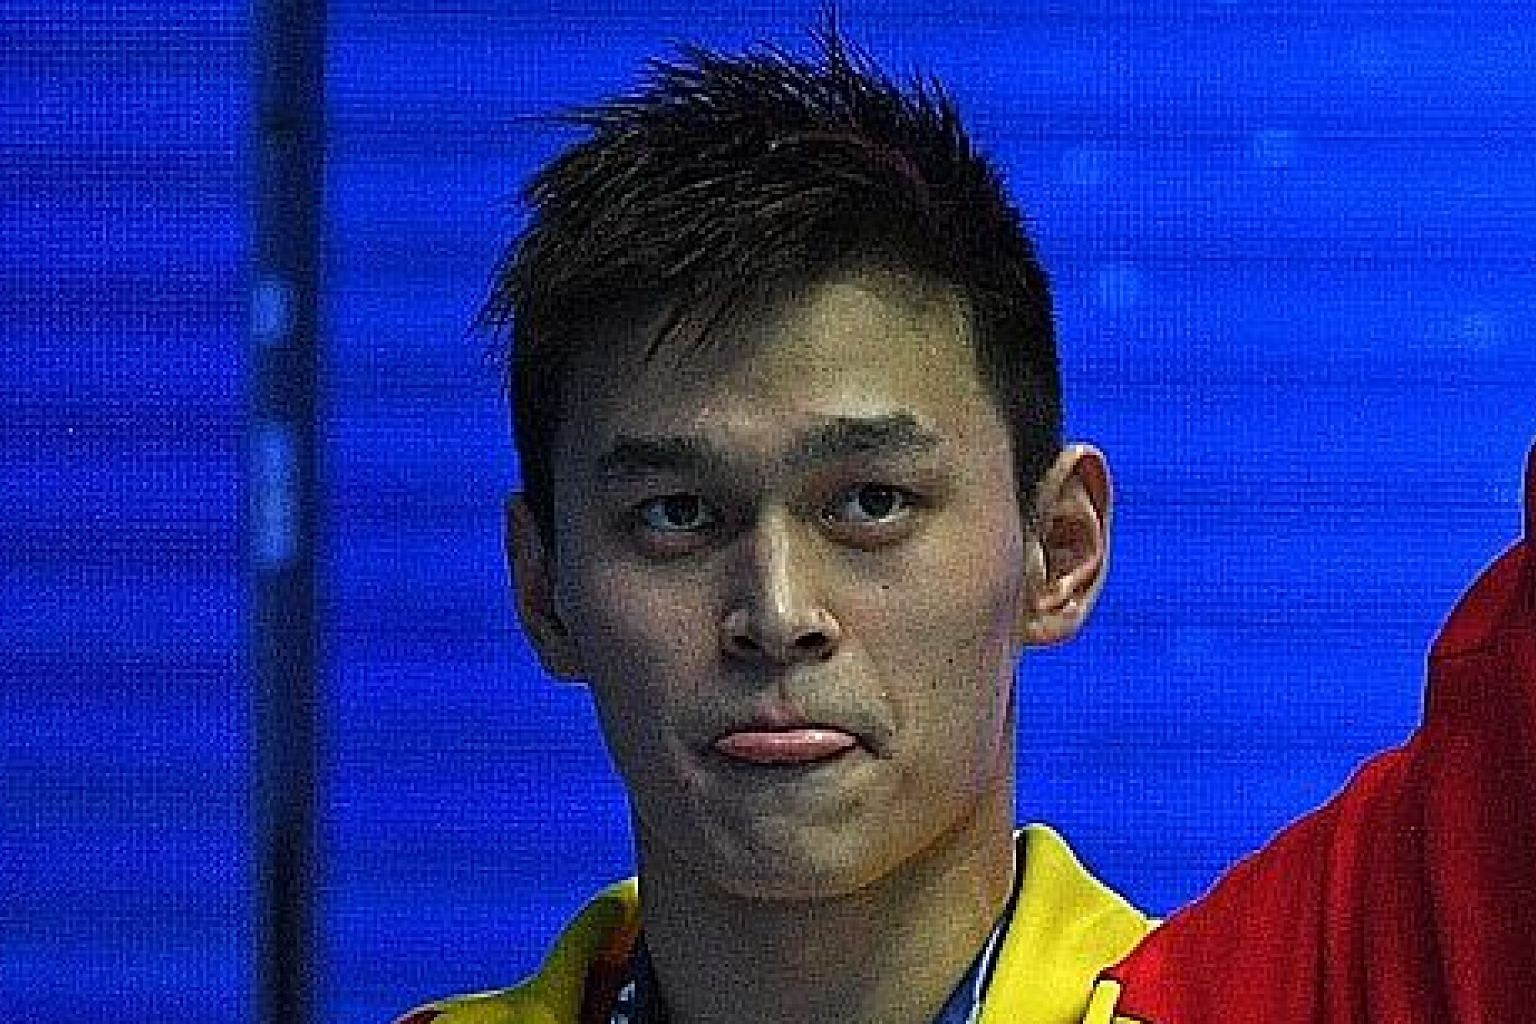 Sun Yang will face a public hearing with the Court of Arbitration of Sport later this year.